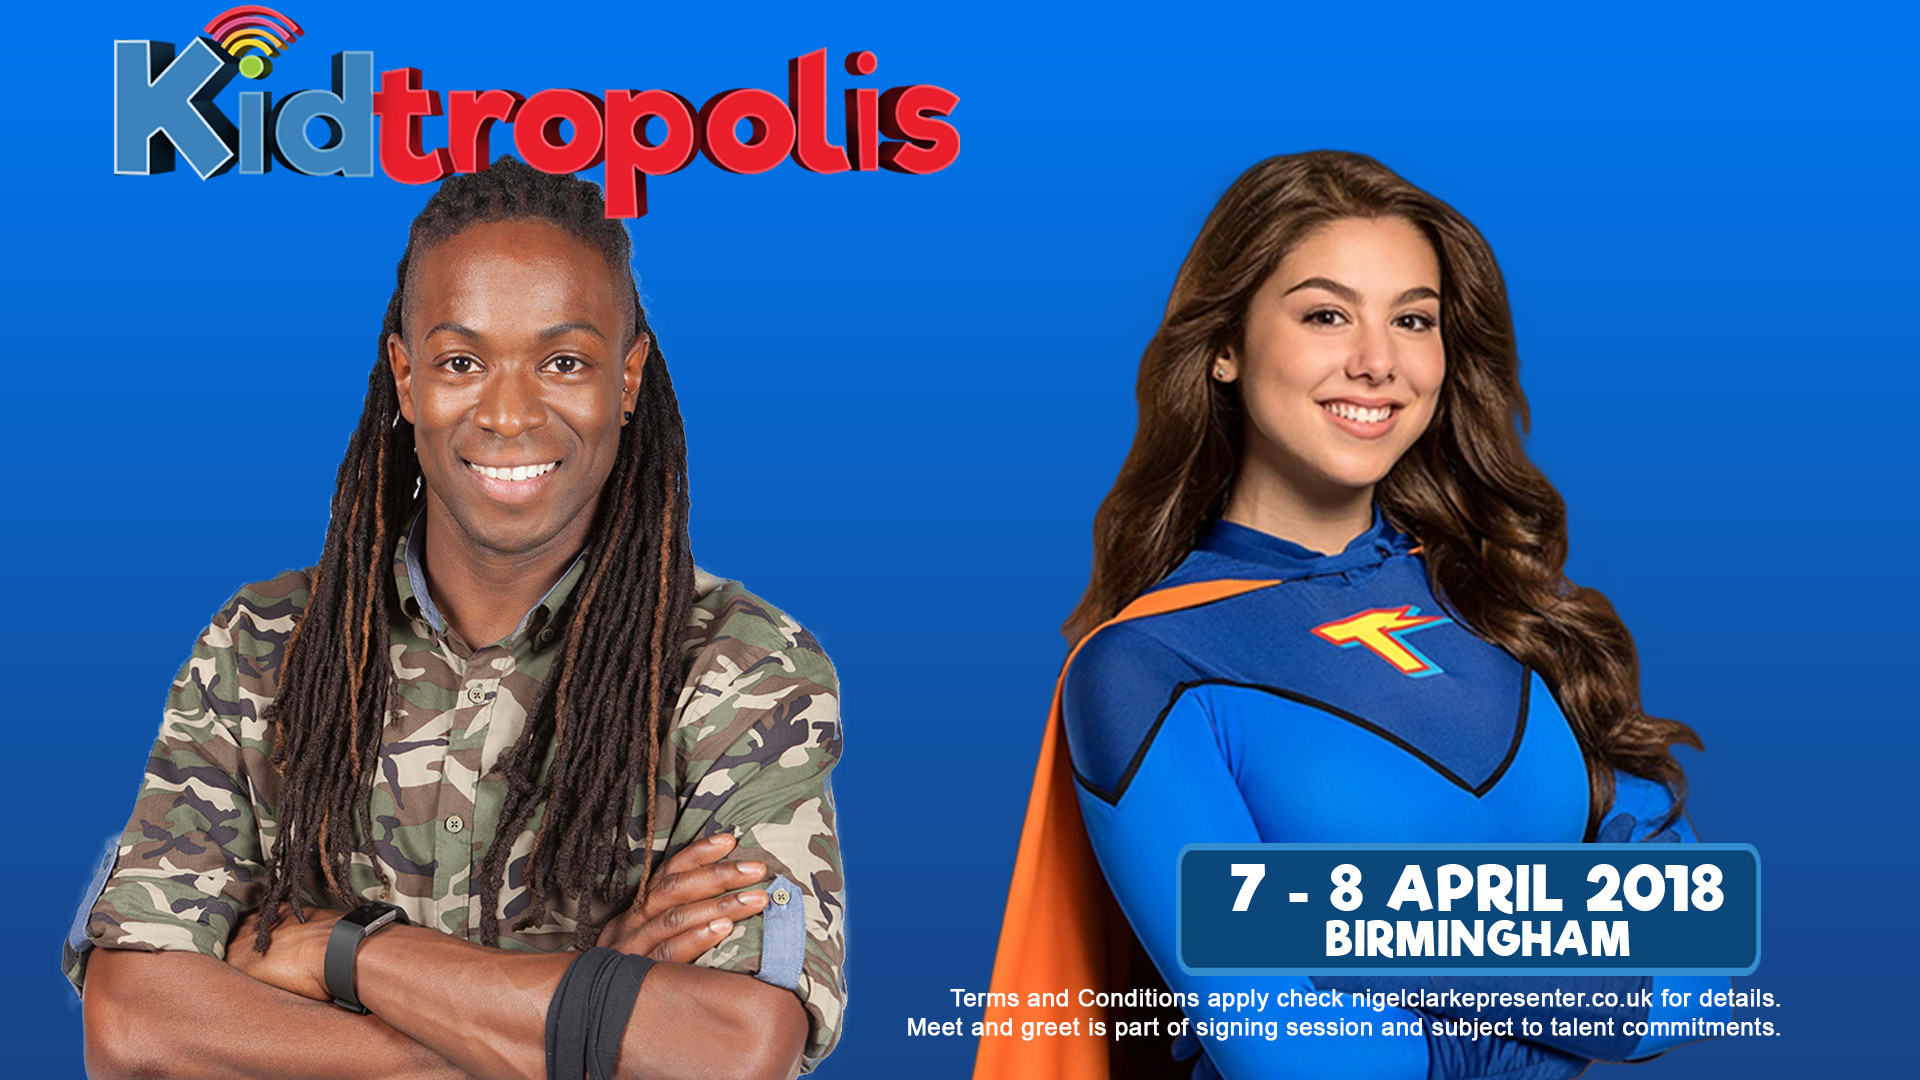 Meet Kira Kosarin at Kidtropolis 2018 - Nigel Clarke blog